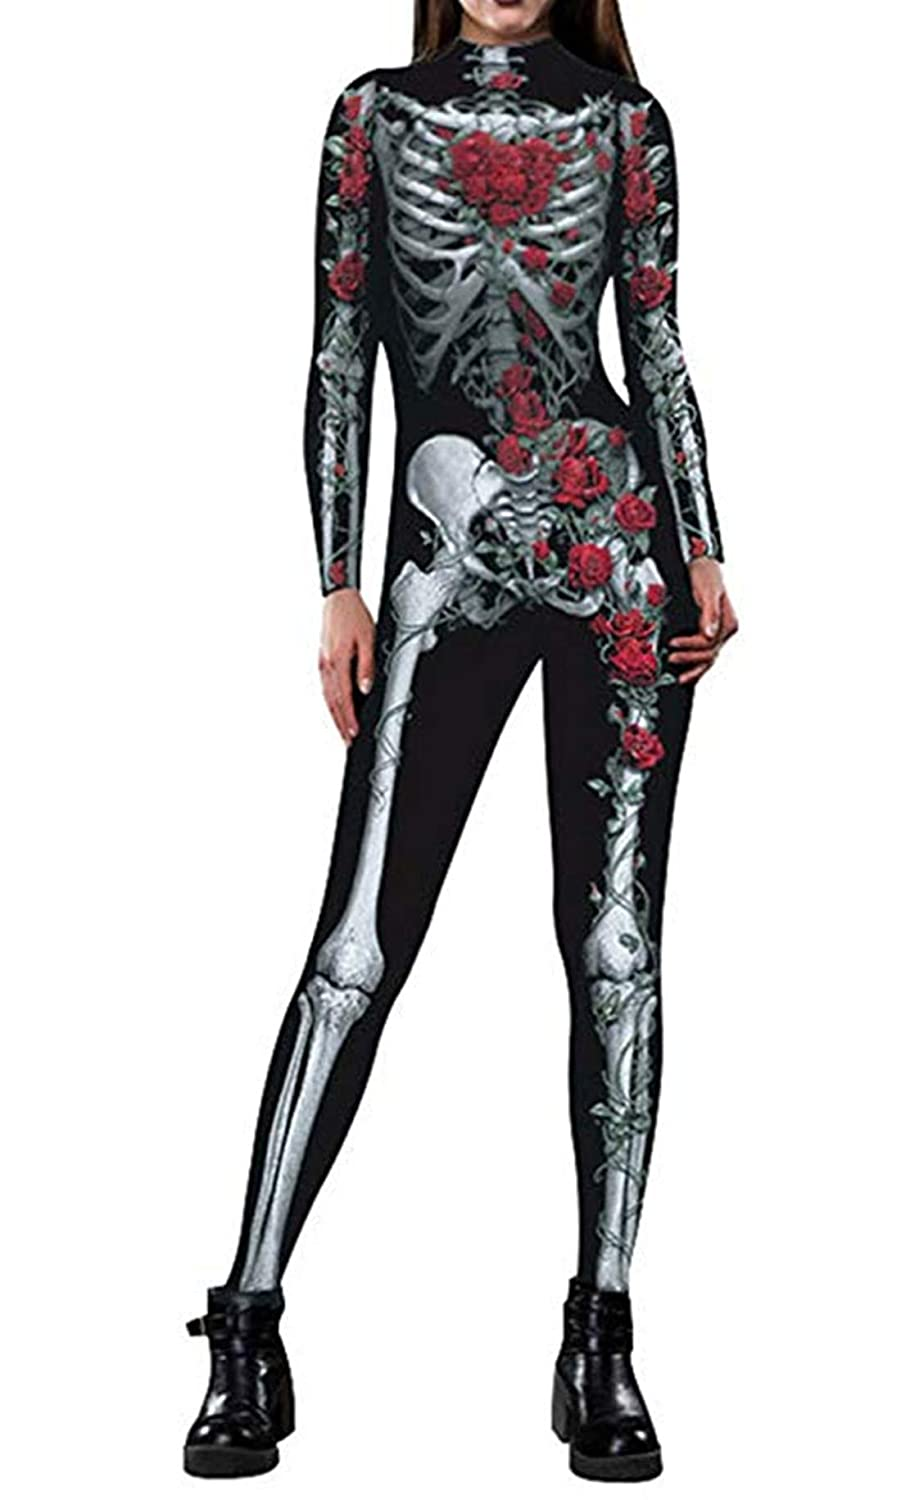 Idgreatim Women Halloween Costume 3D Print Long Sleeve Skinny Skeleton Catsuit Cosplay Jumpsuit Bodysuit